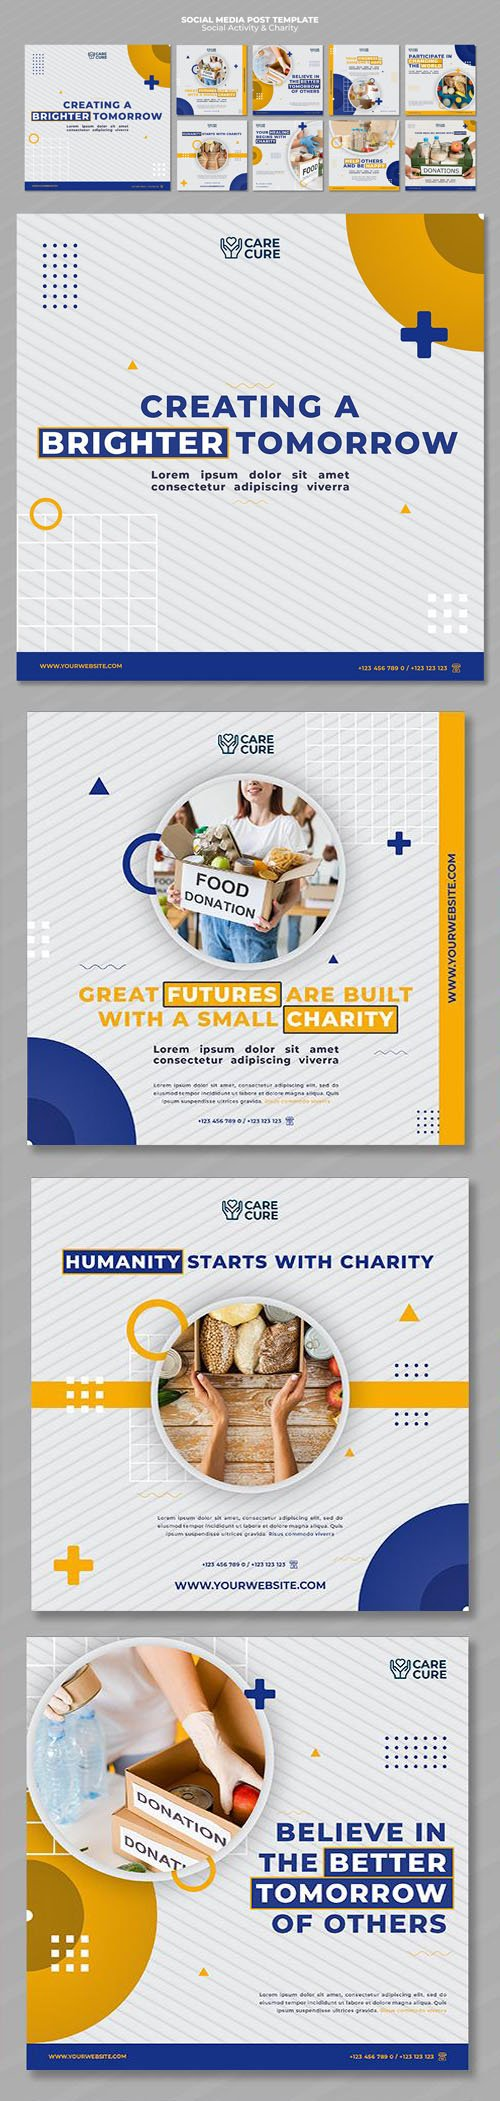 Charity & Social Activity Instagram Posts PSD Templates